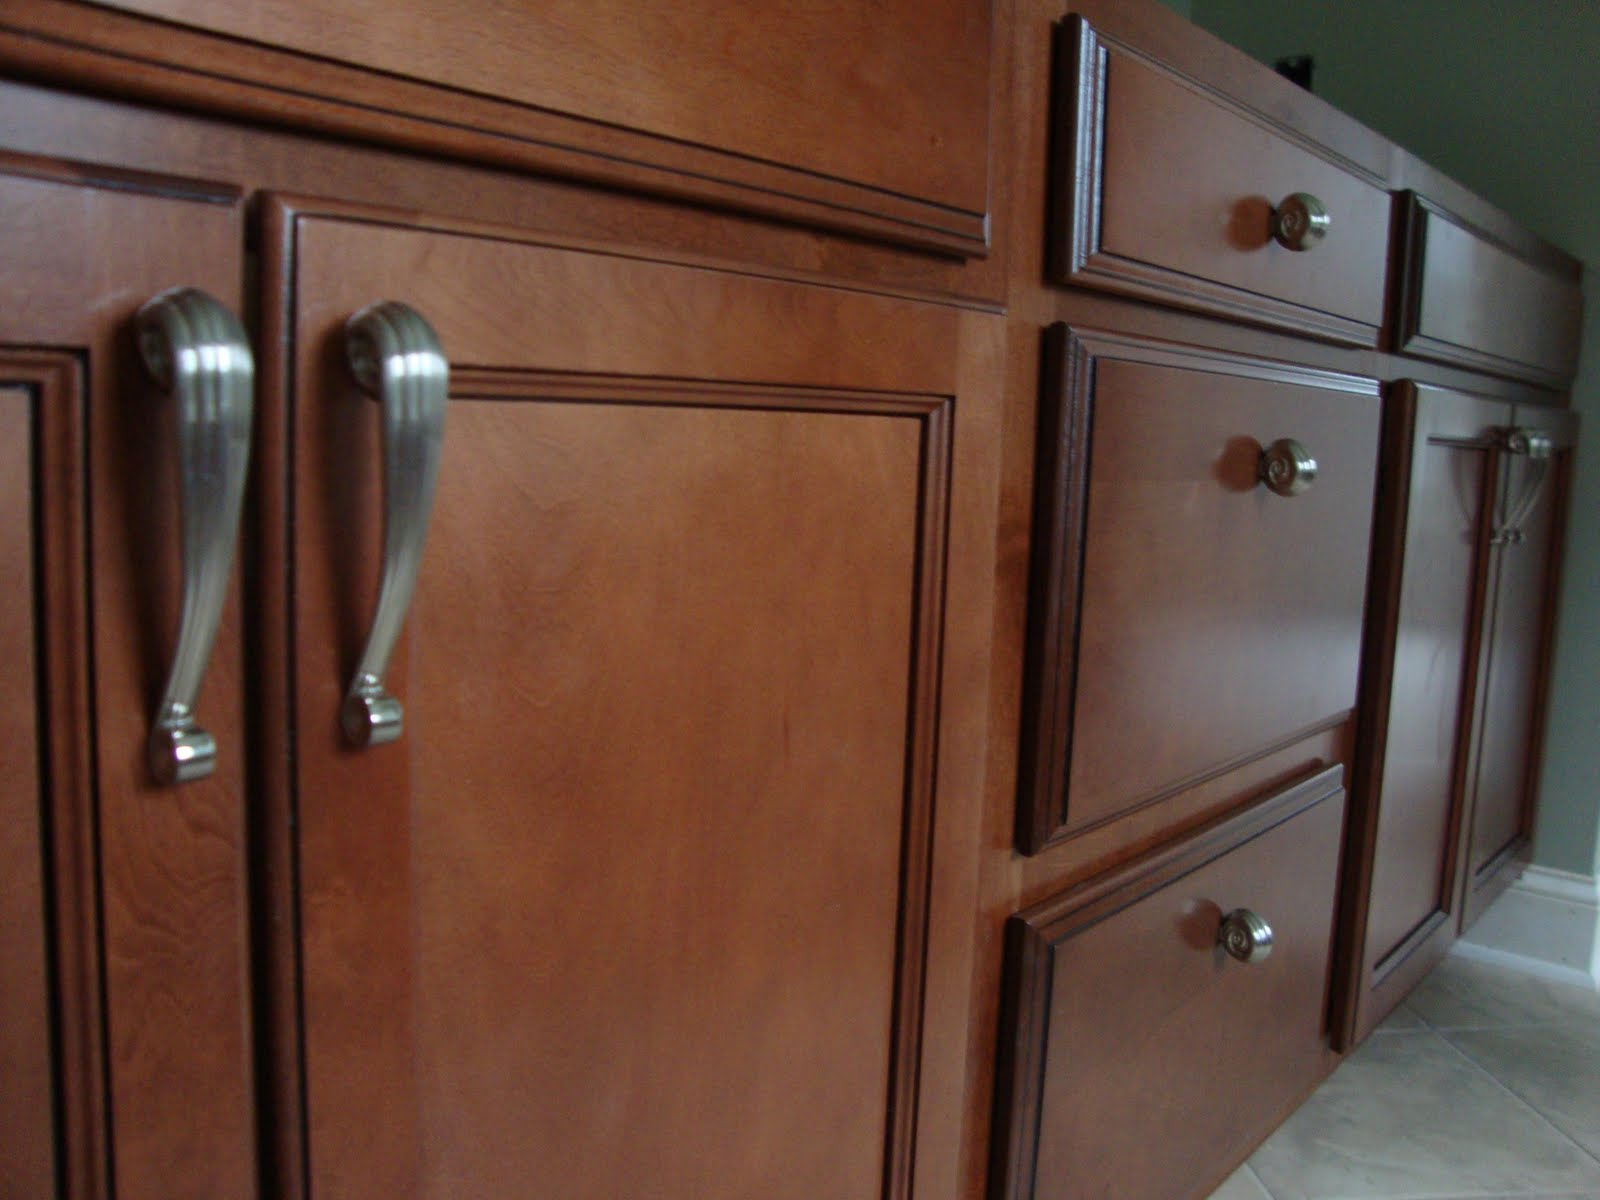 Bathroom cabinet hardware